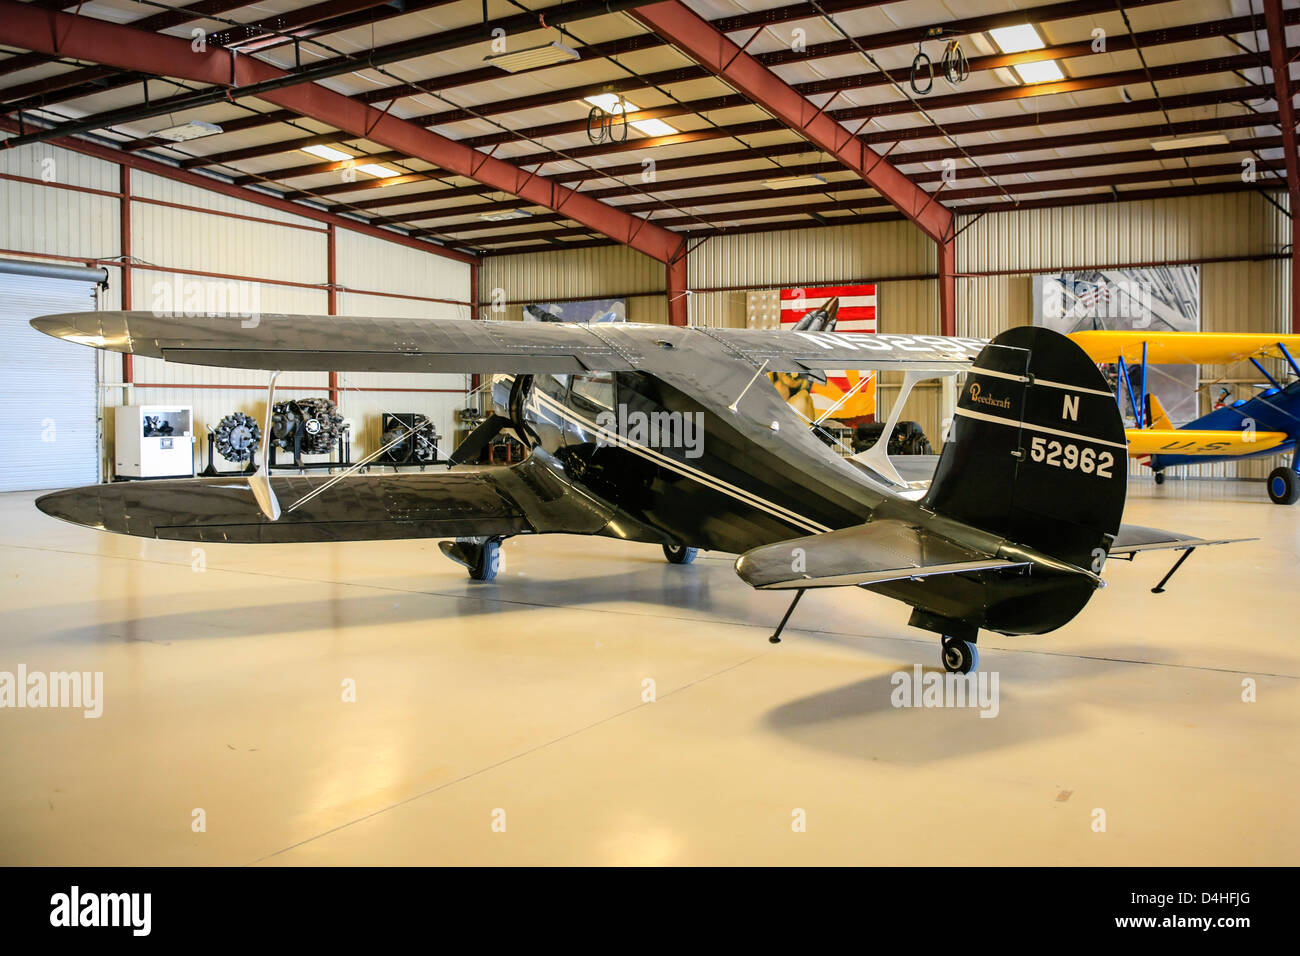 A 1944 Beech D17S plane at the Sun n Fun Florida Air Museum in Lakeland - Stock Image